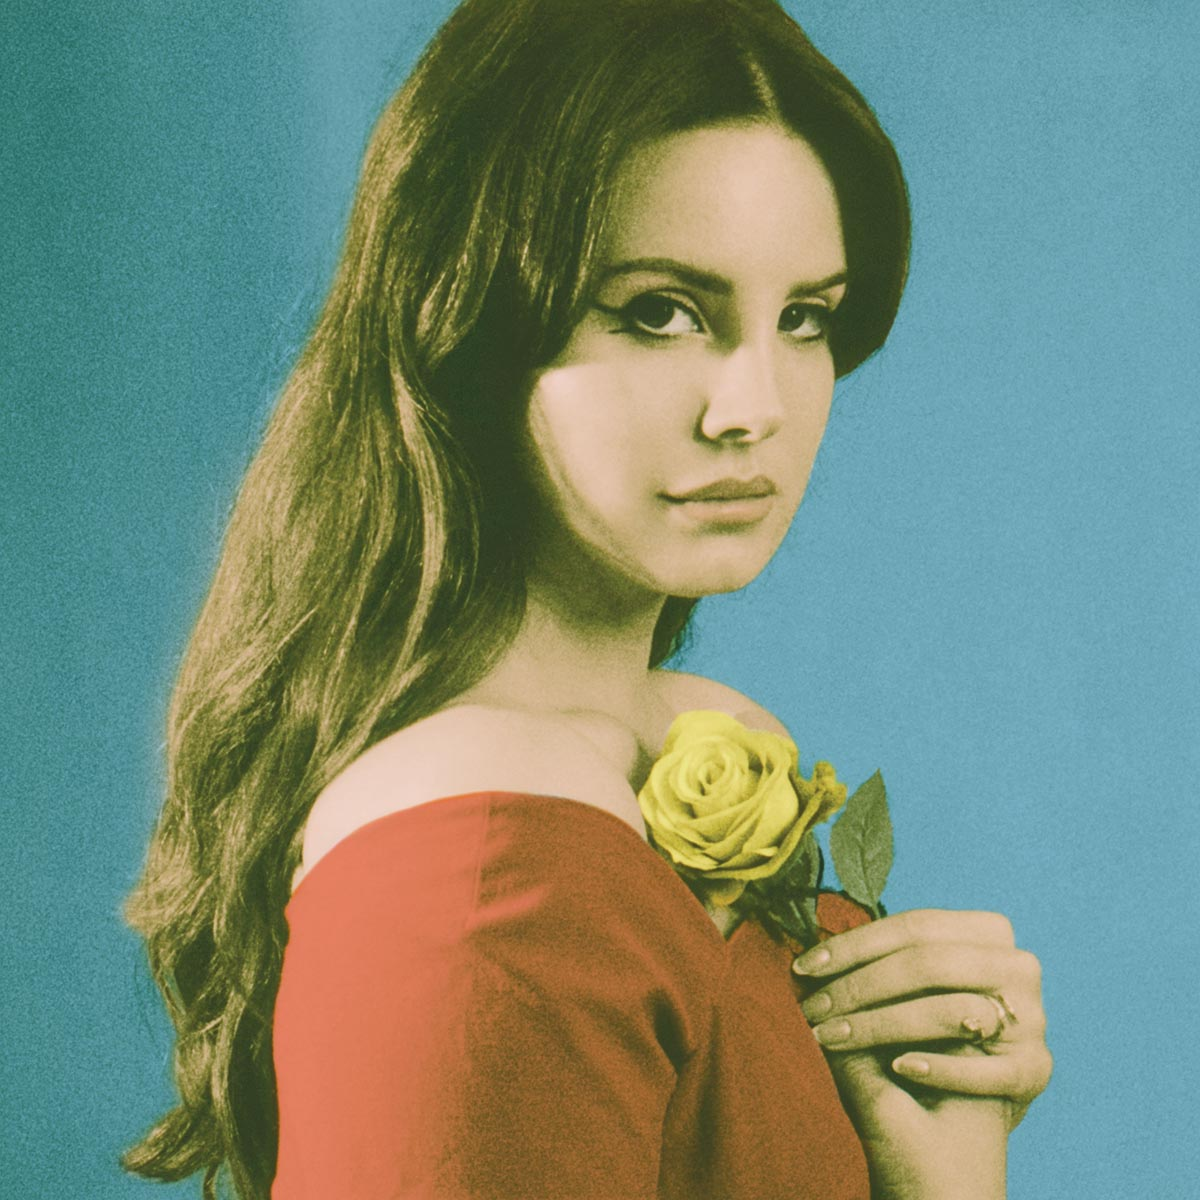 Lana Del Rey y The Weeknd estrenan sencillo: Lust for Life